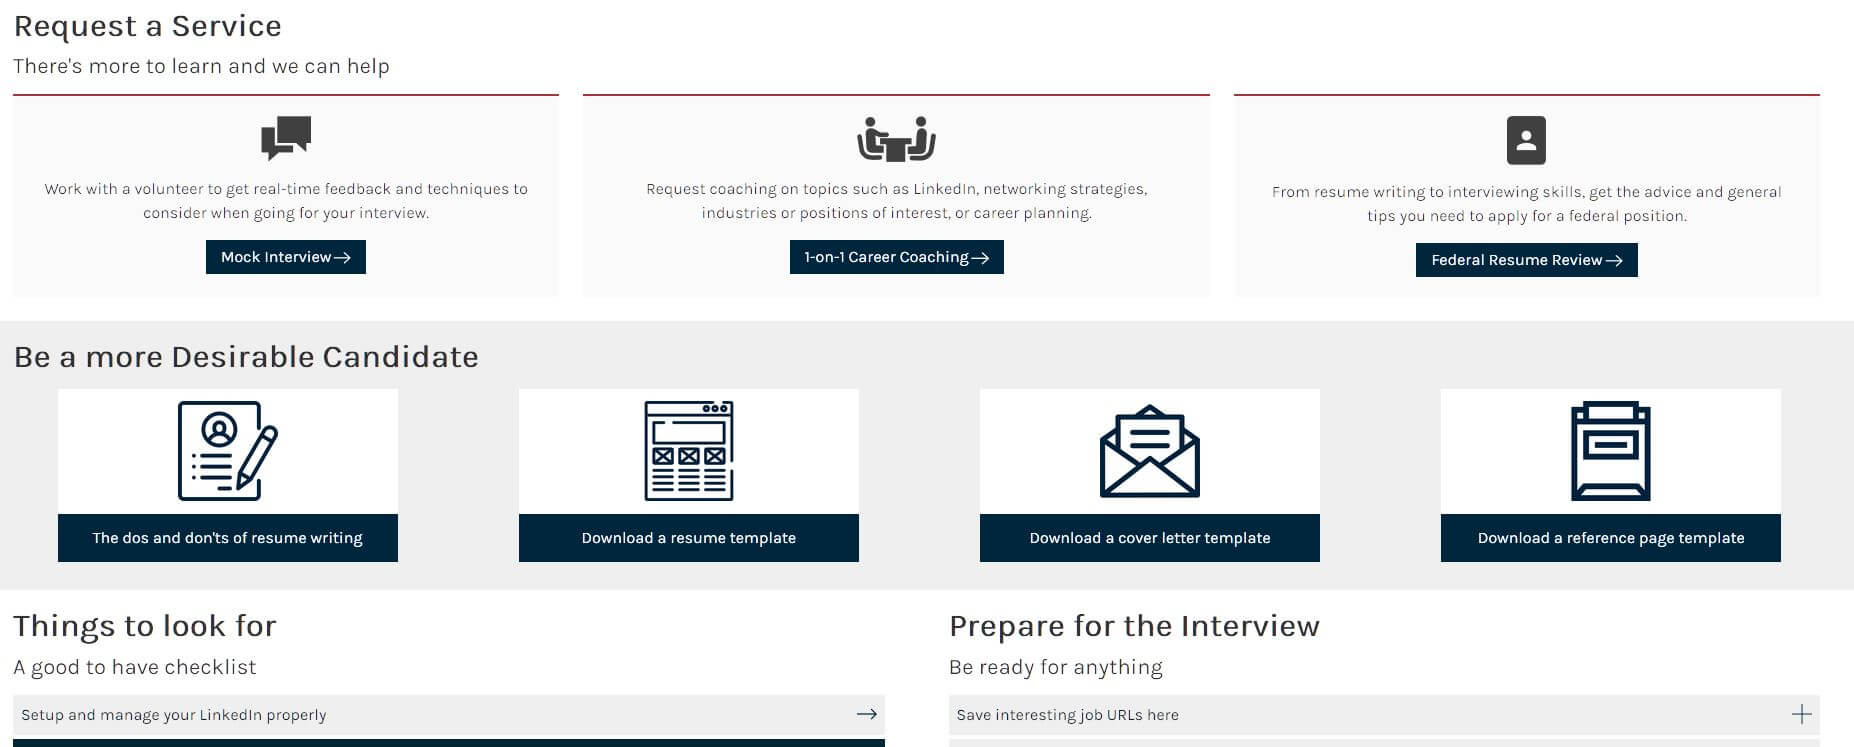 Hire Heroes USA has services that helps you improve your resume and cover letter